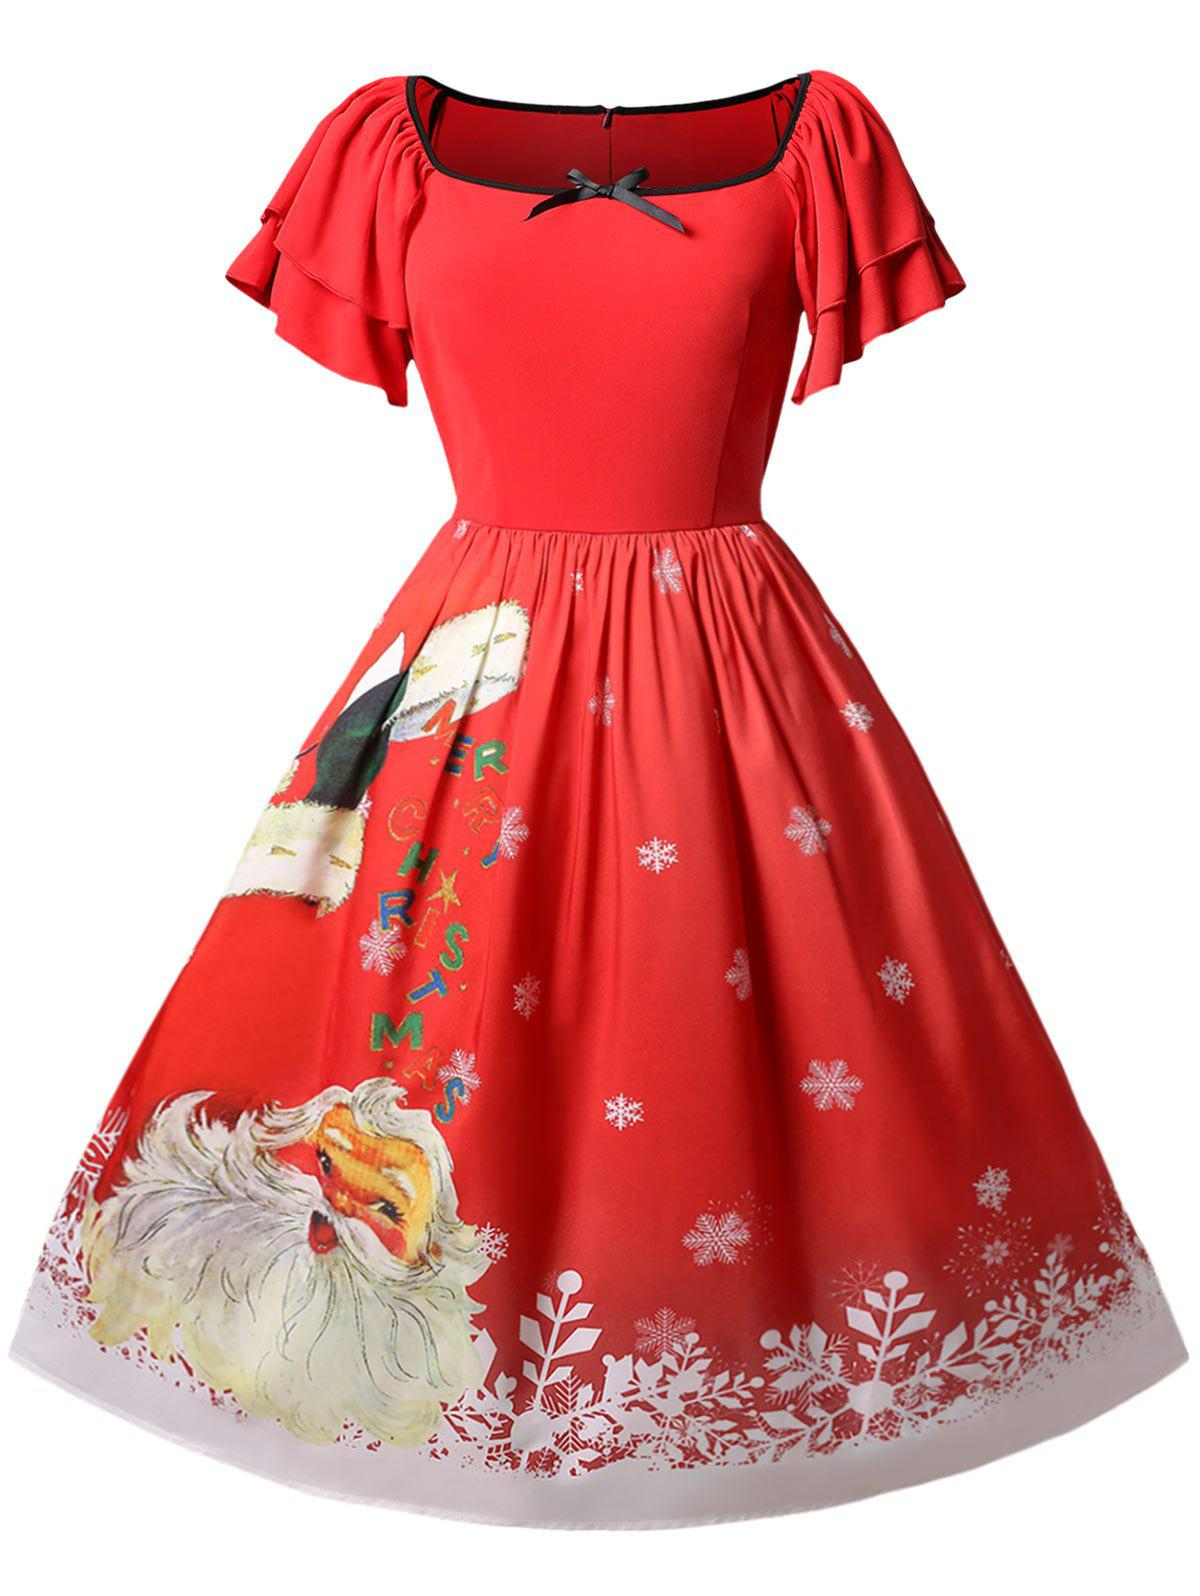 93b68ce7e7fd 32% OFF] Christmas Plus Size Santa Claus Print Vintage Dress | Rosegal